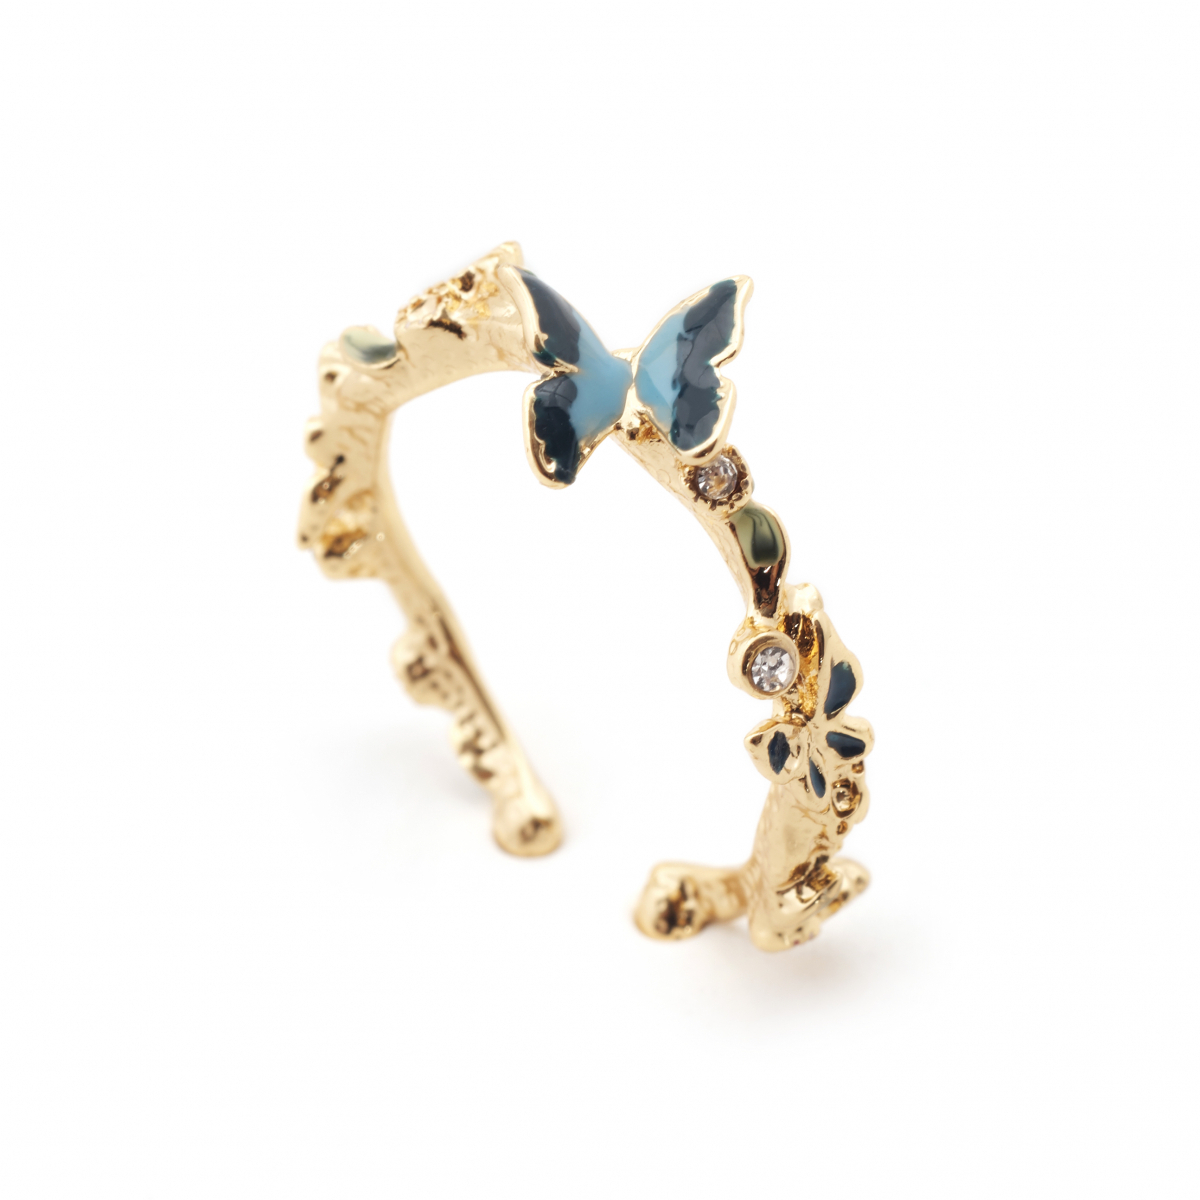 Butterfly & Crystal Open Ring – Gold Intended For Recent Butterfly Open Rings (View 6 of 25)